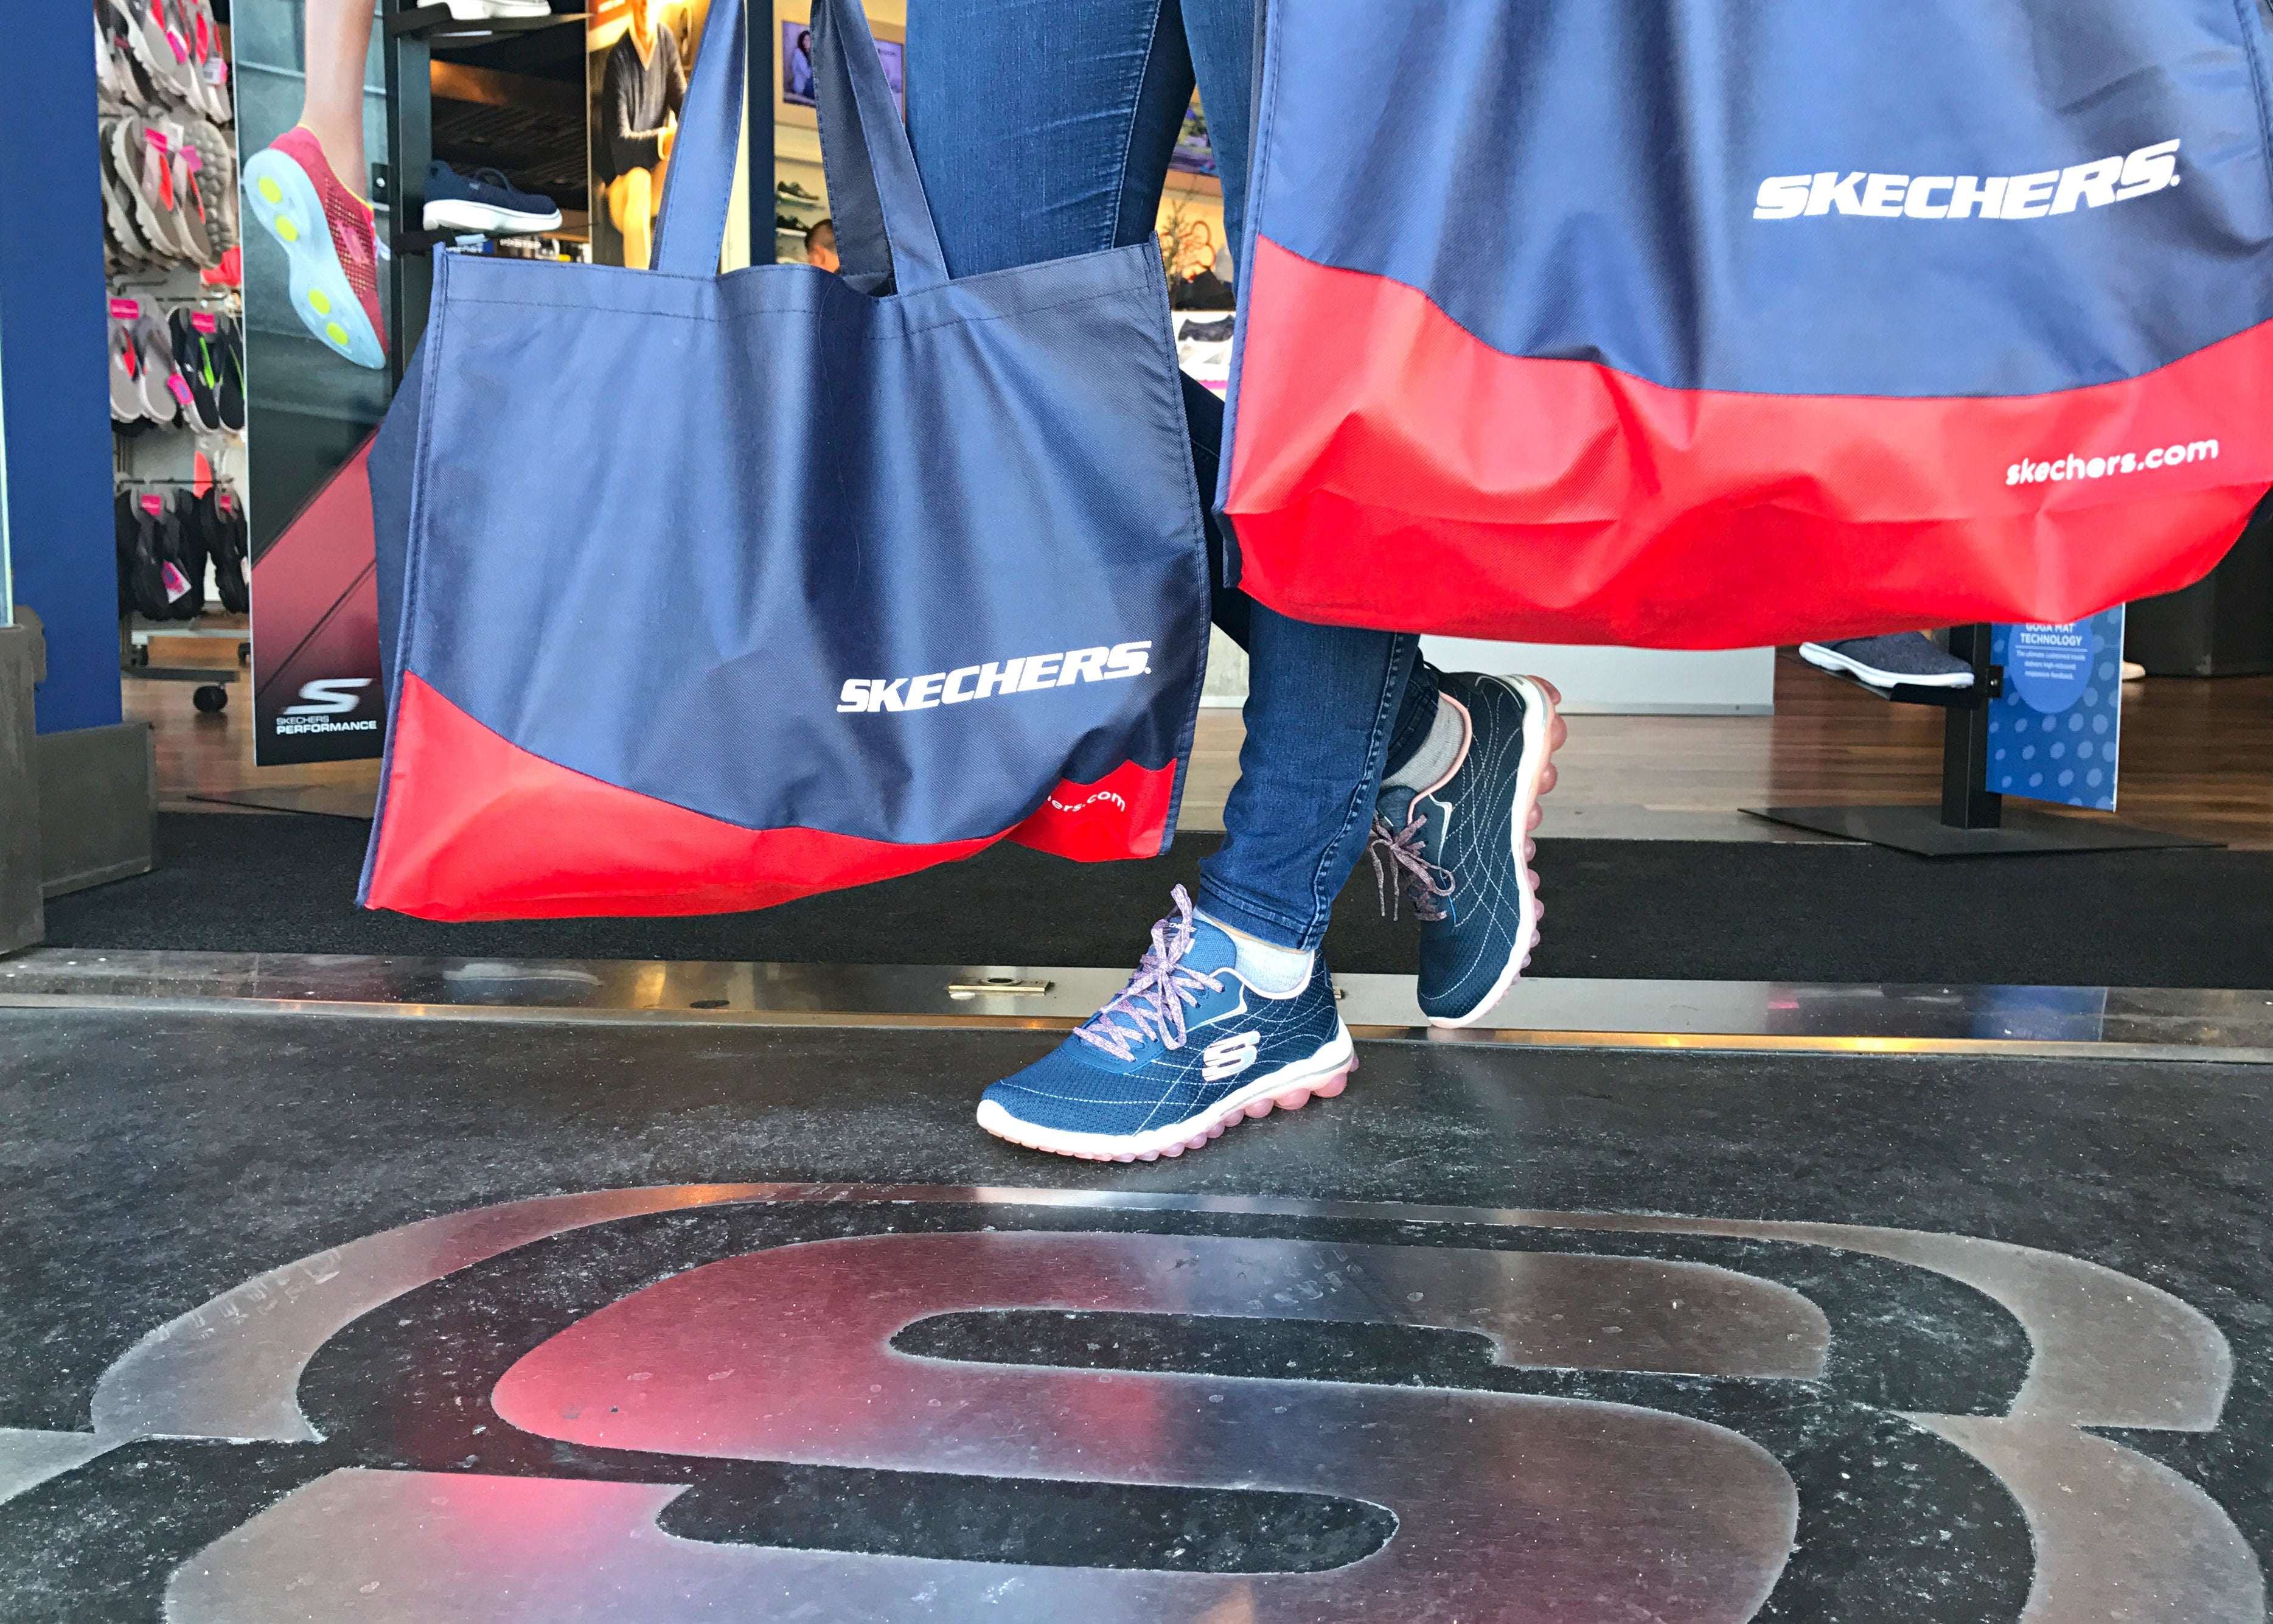 c0fe7396a61d What to Expect When Skechers Reports Earnings Next Week -- The ...